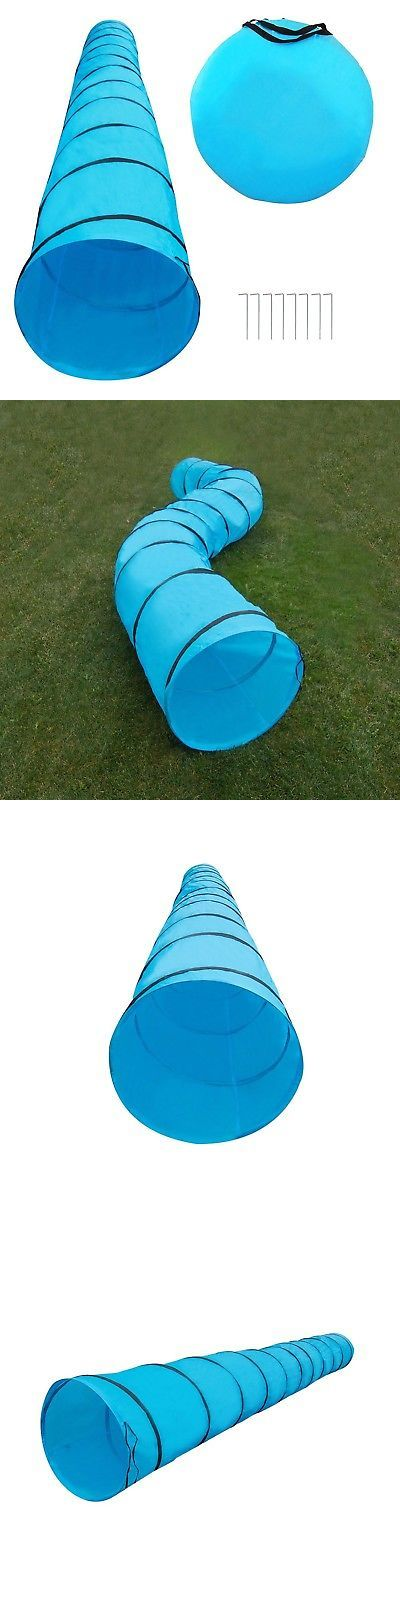 Agility Training 116383: Houseables Dog Tunnel Agility Equipment 18 Ft Long 24 Open Blue Polyeste... New -> BUY IT NOW ONLY: $46.18 on eBay!